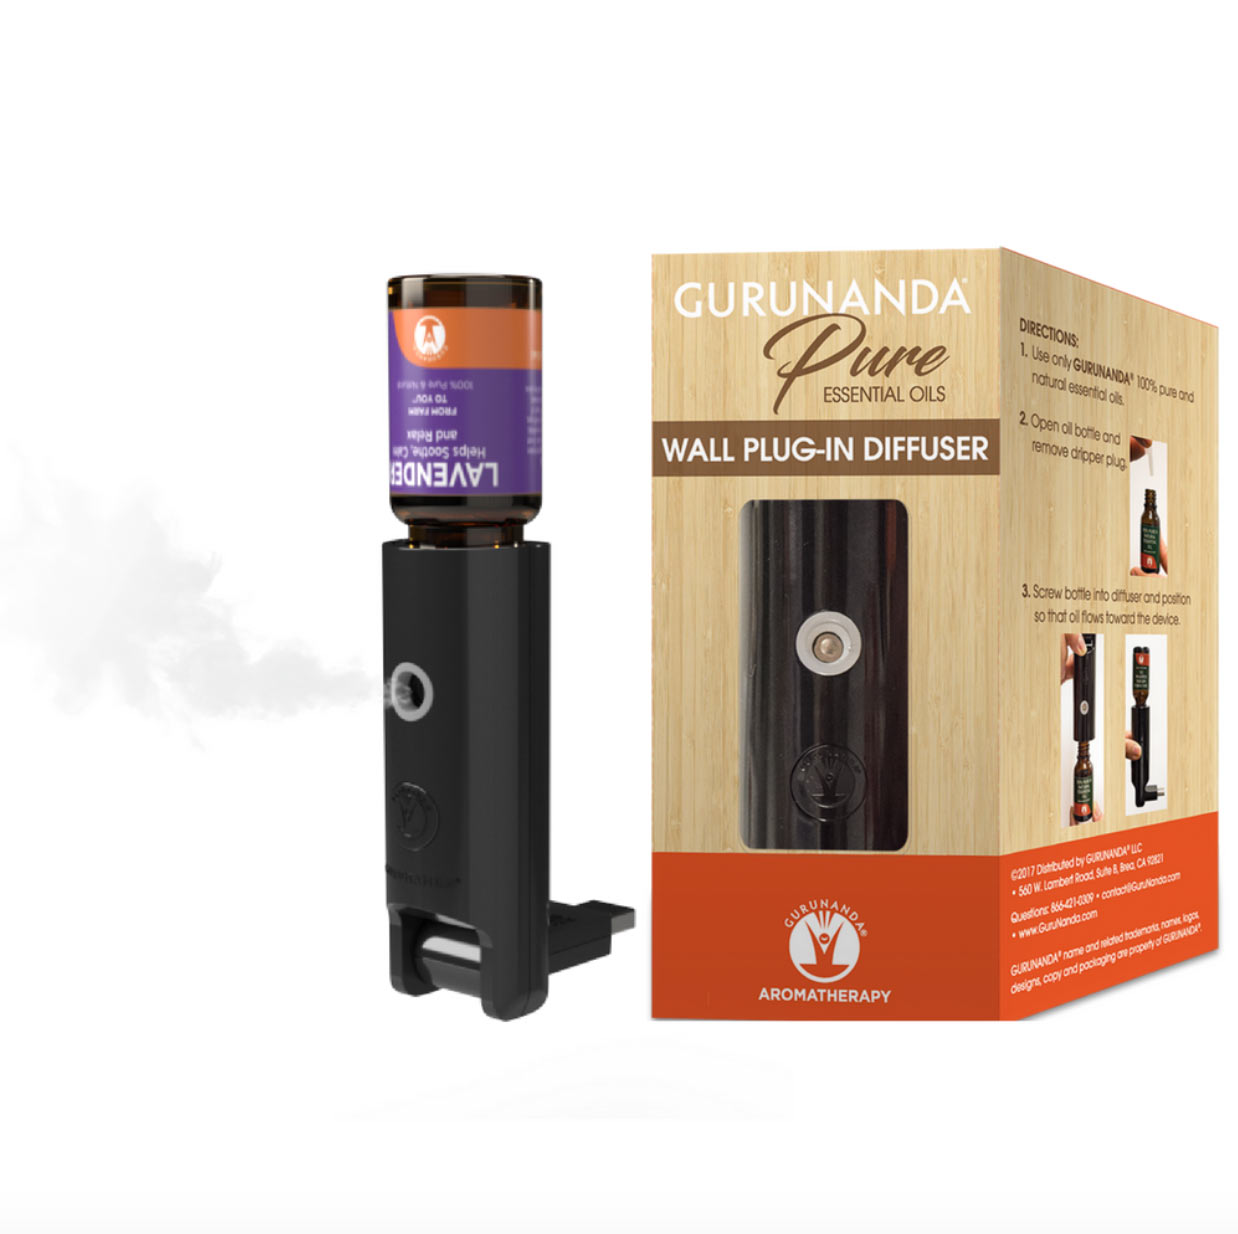 Gurunanda Pure Essential Oils Wall plug-in diffuser